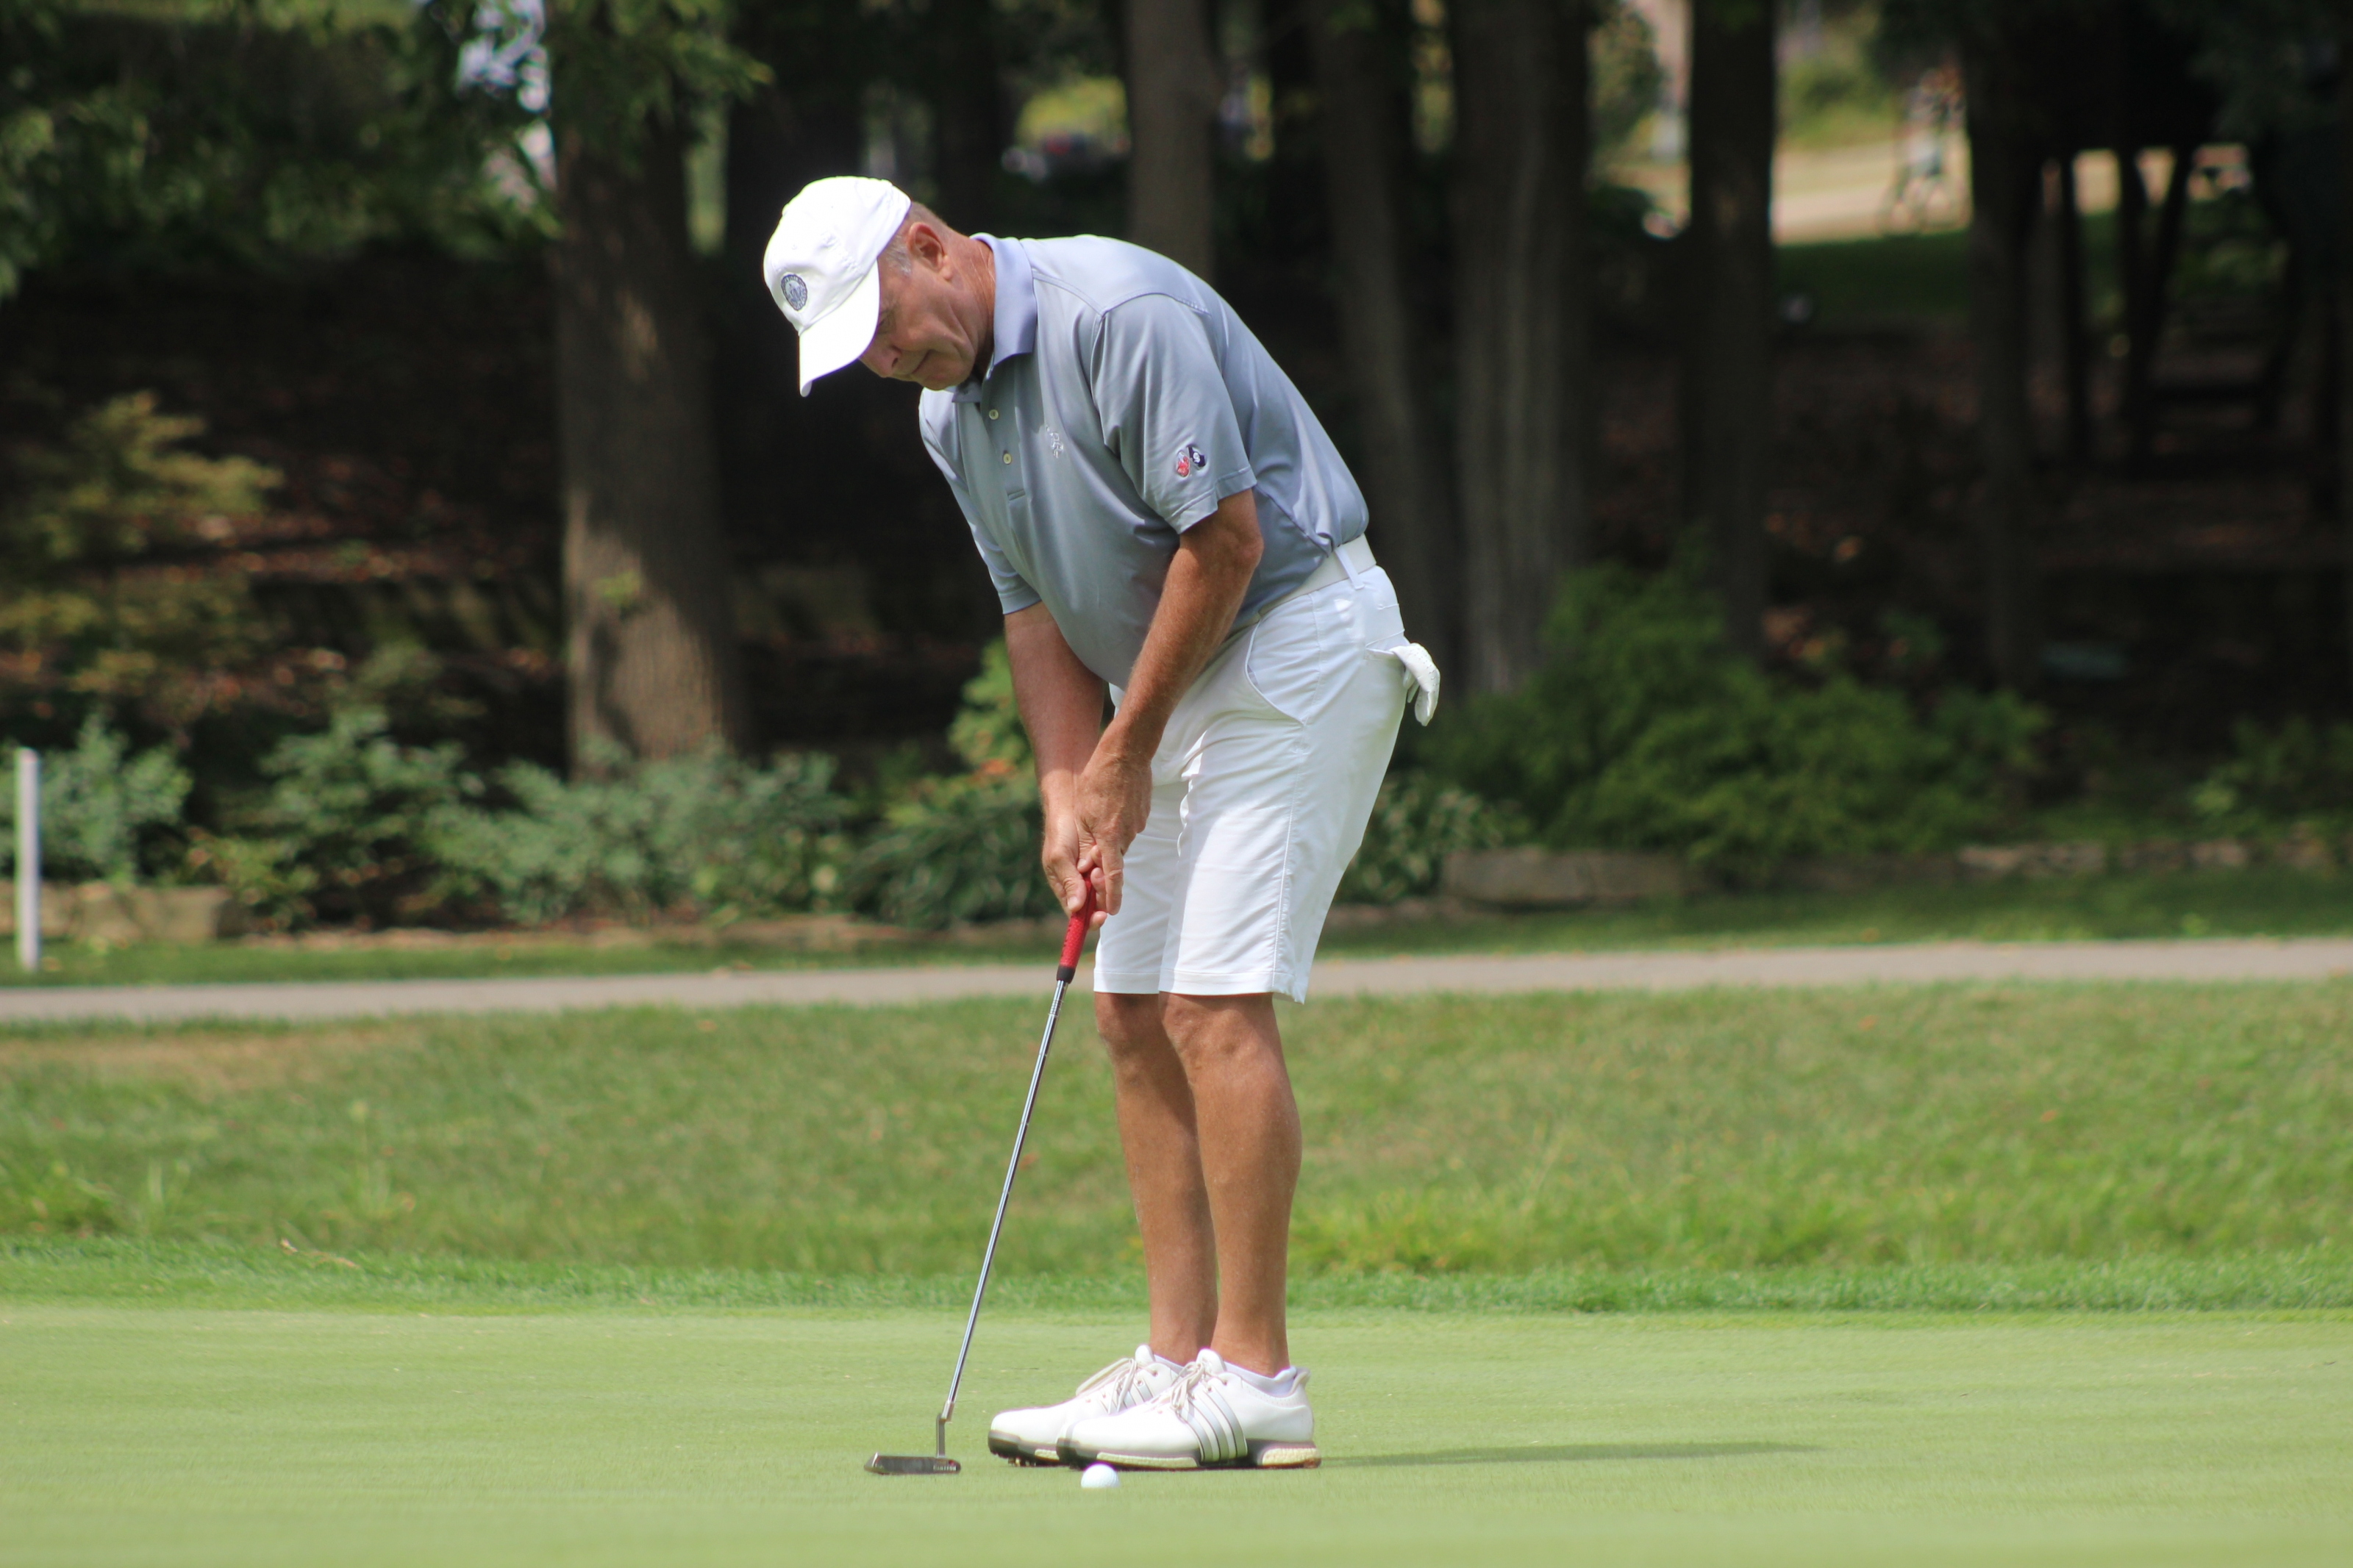 Werner Wins Fourth Senior Amateur